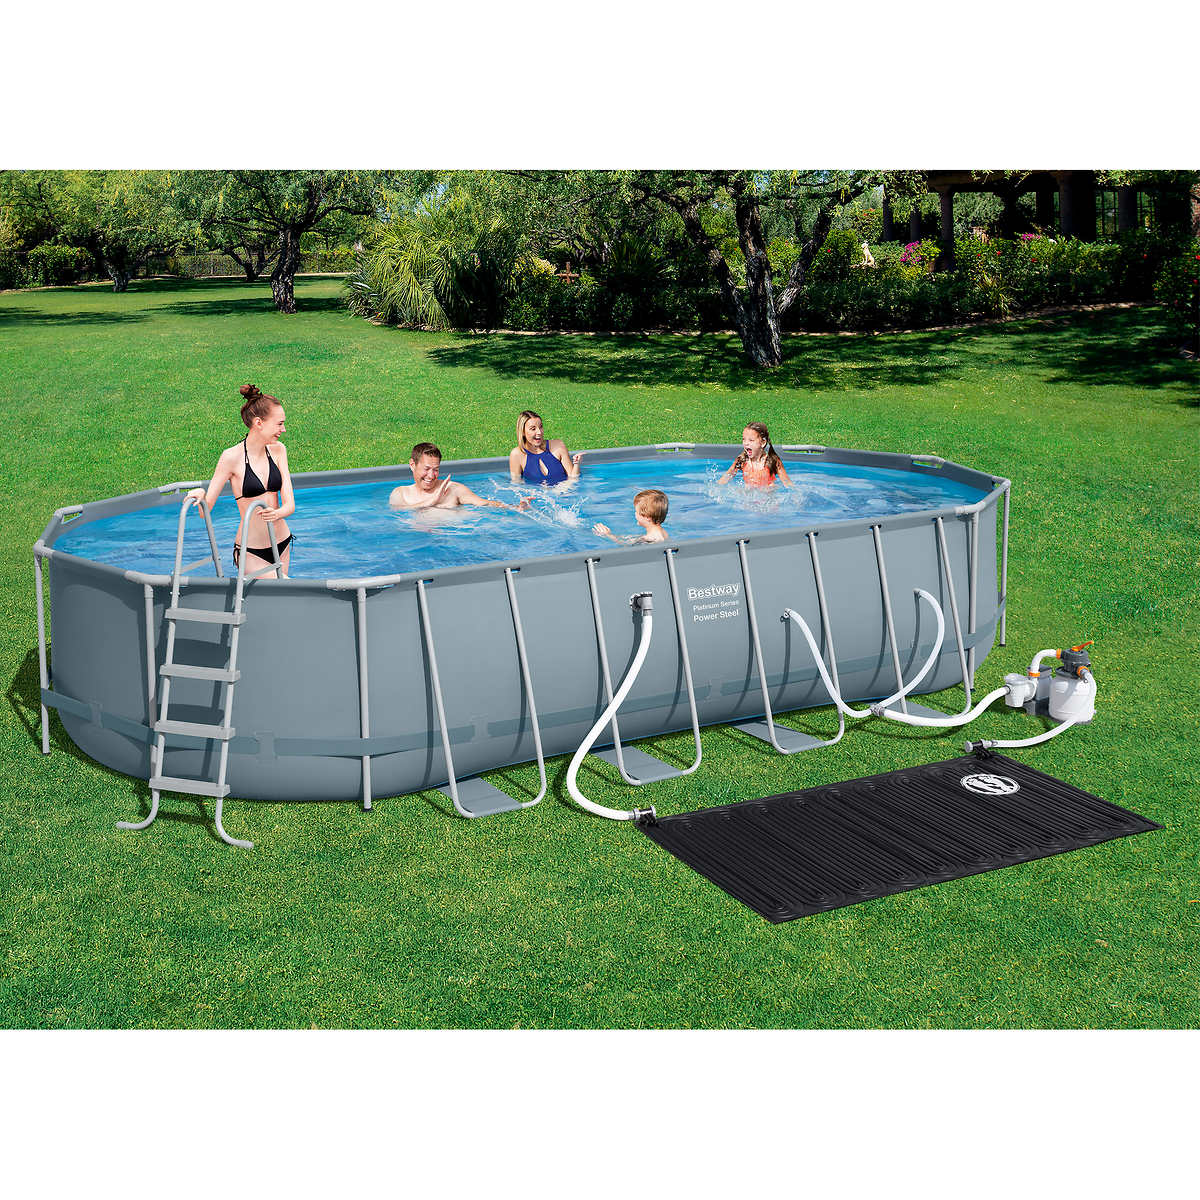 Bestway Power Steel 22 X 12 X 48 Above Ground Pool Set